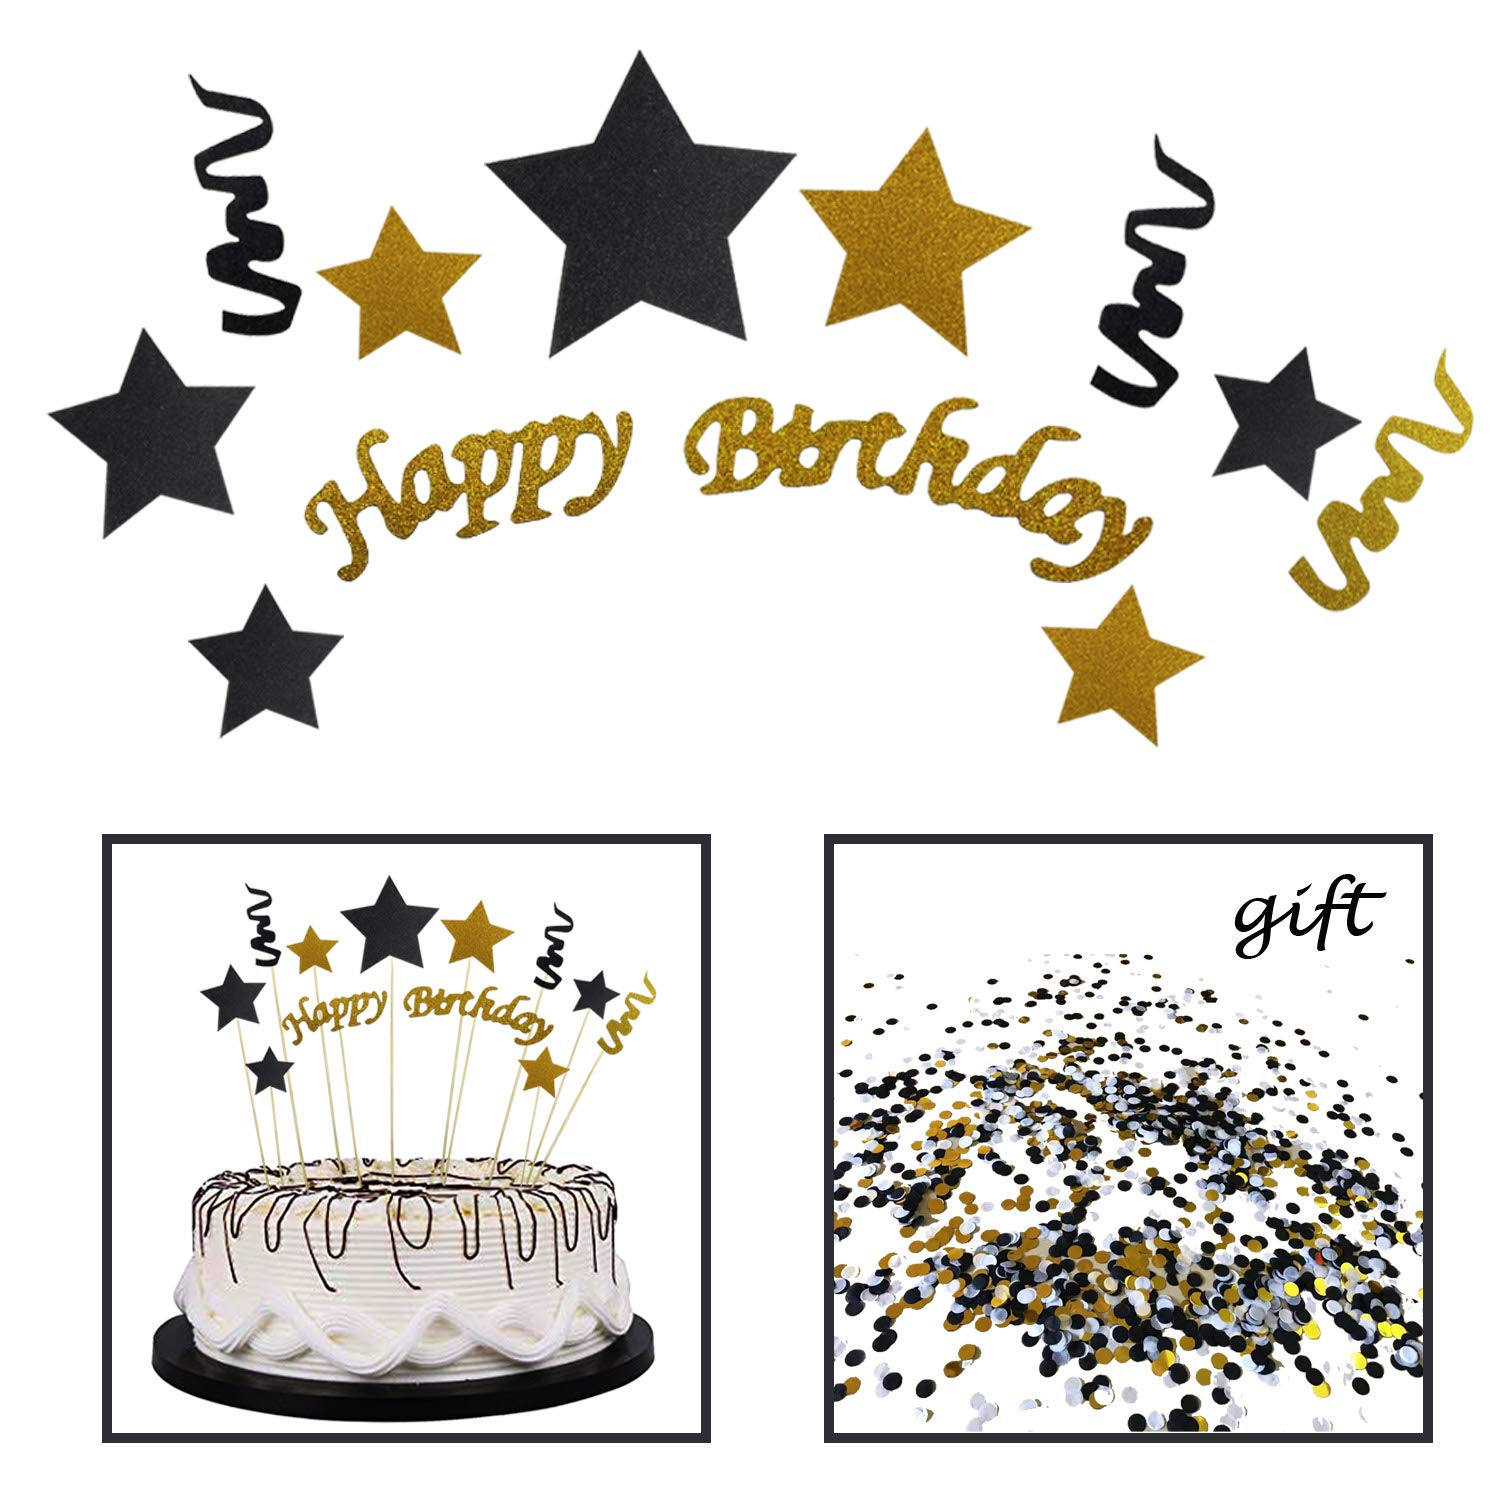 1 PCS Confetti for Party Decoration by SeasonskyCake Decoration 1 Pack Happy Birthday Cake Bunting Cake Topper Black and Gold Handmade Black and Gold Glitter Star Cake Decoration